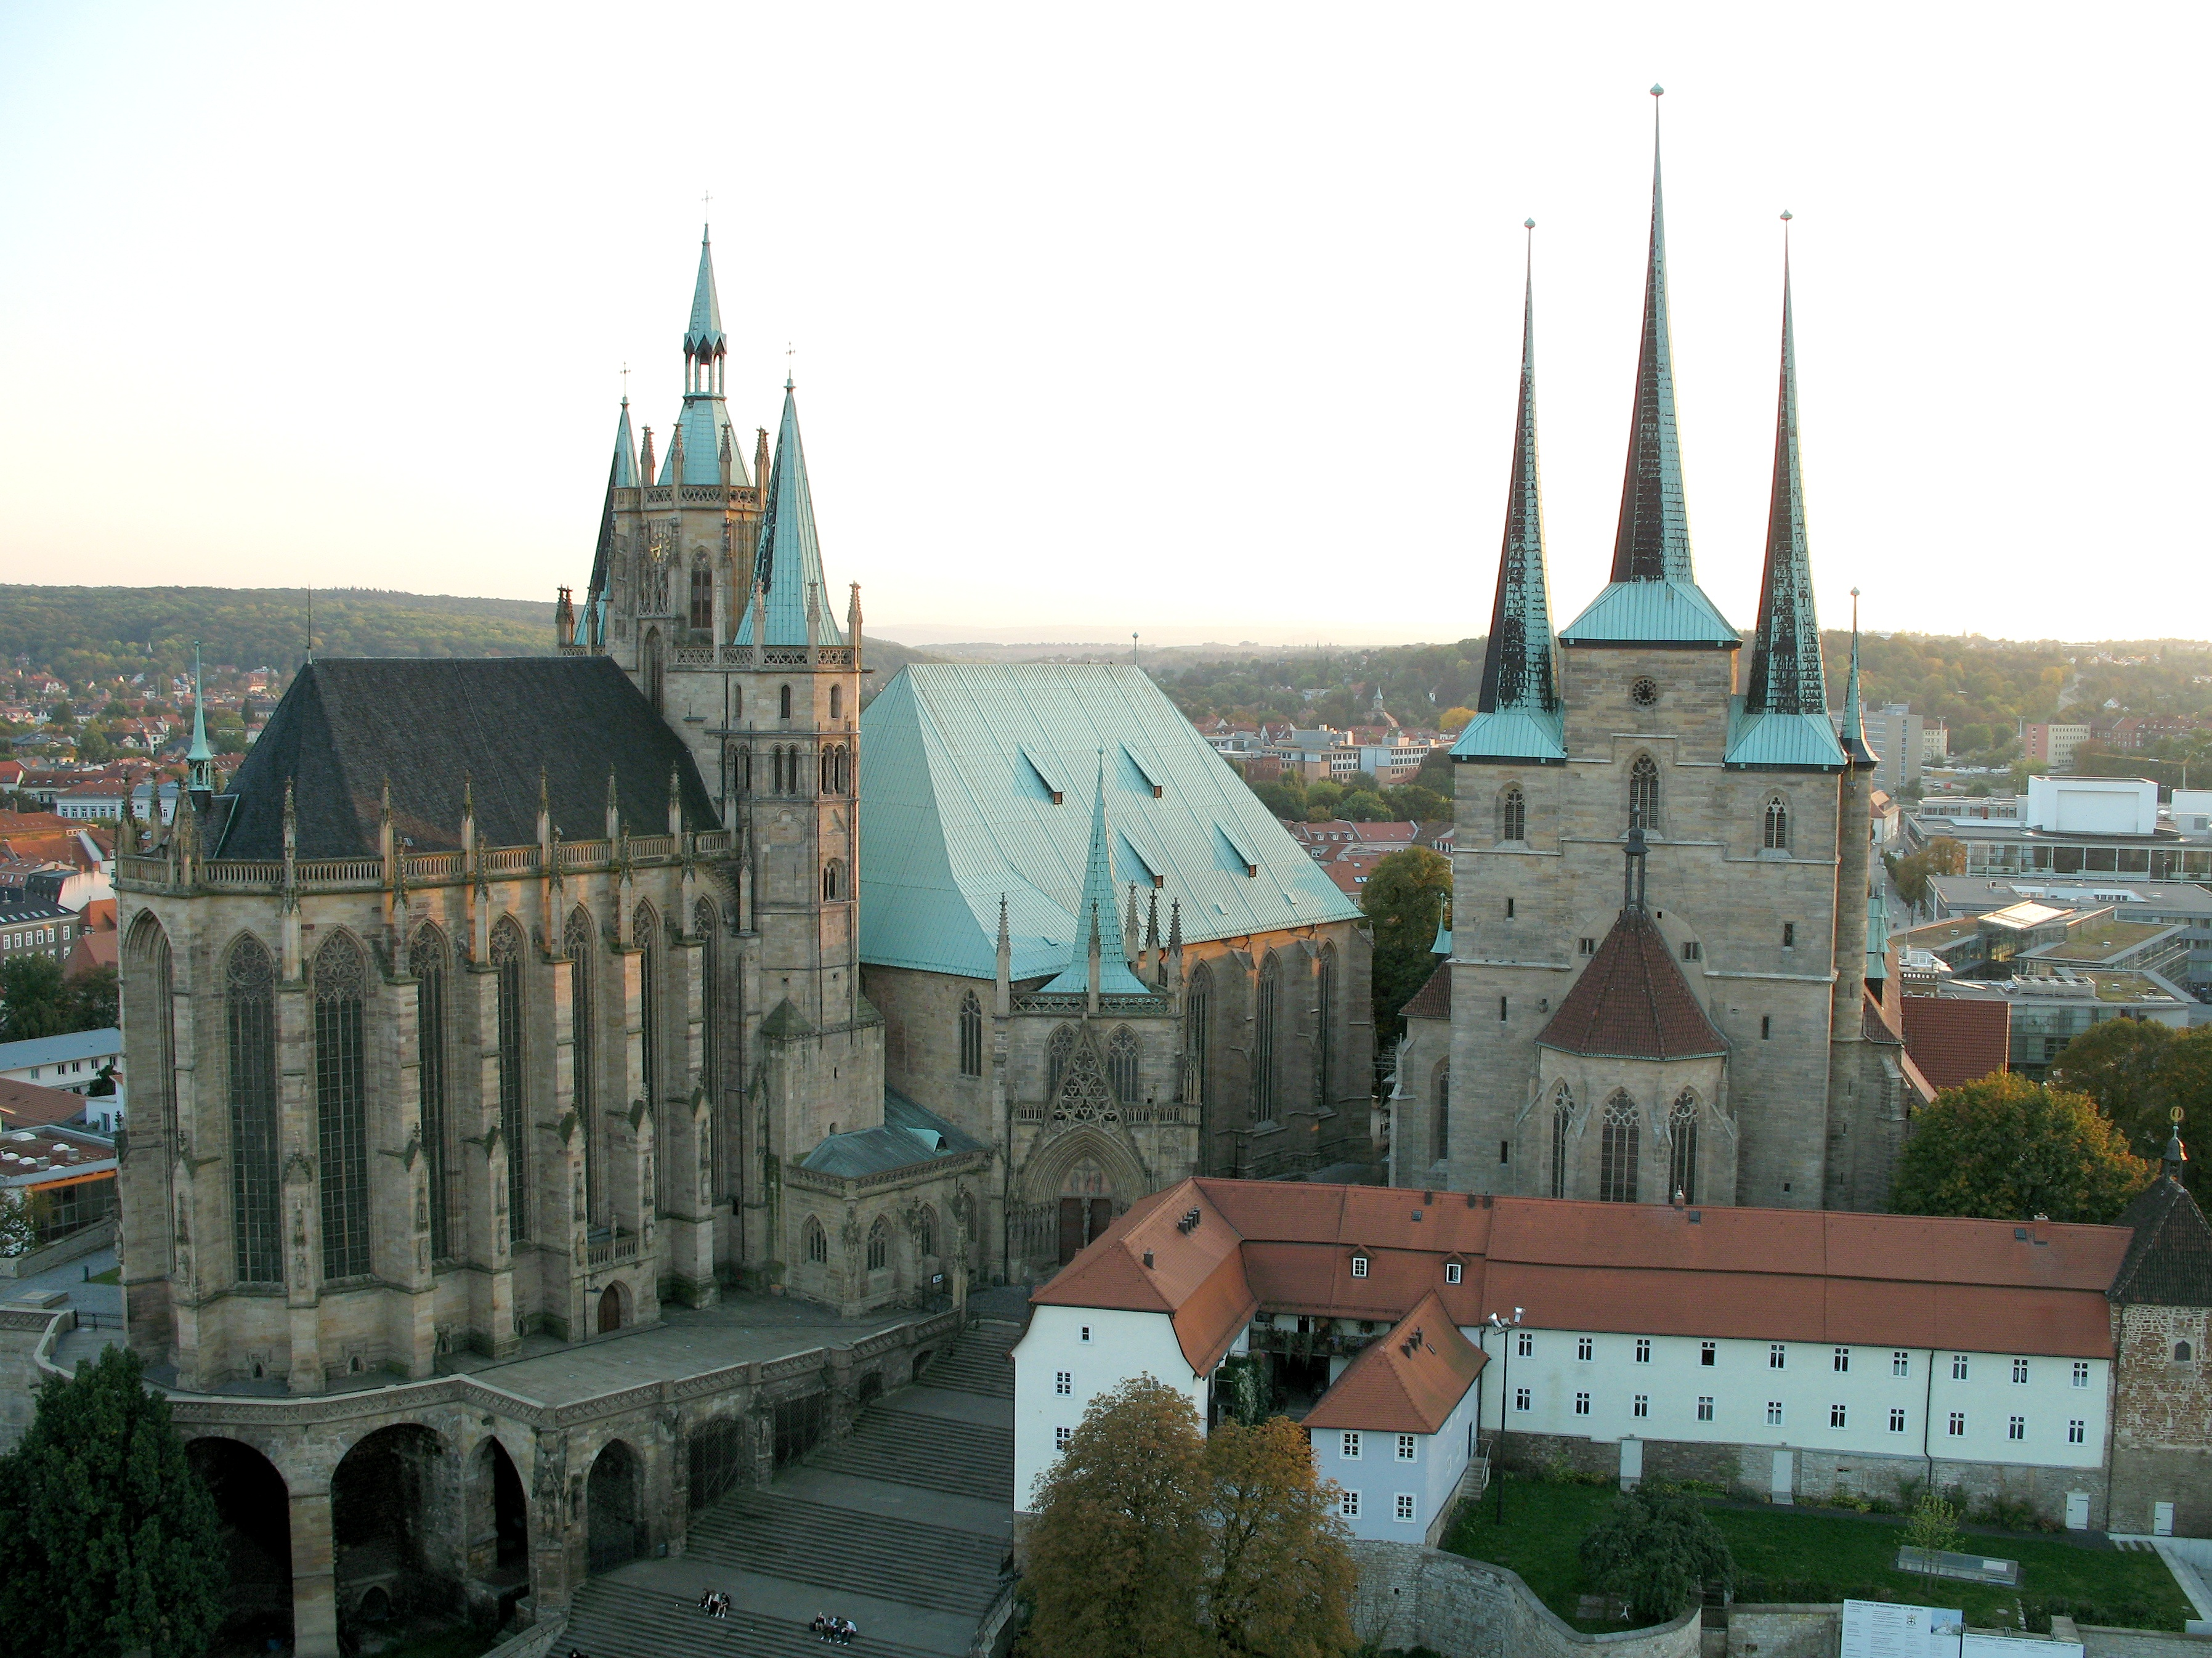 http://upload.wikimedia.org/wikipedia/commons/2/29/Erfurt_cathedral_and_severi_church.jpg